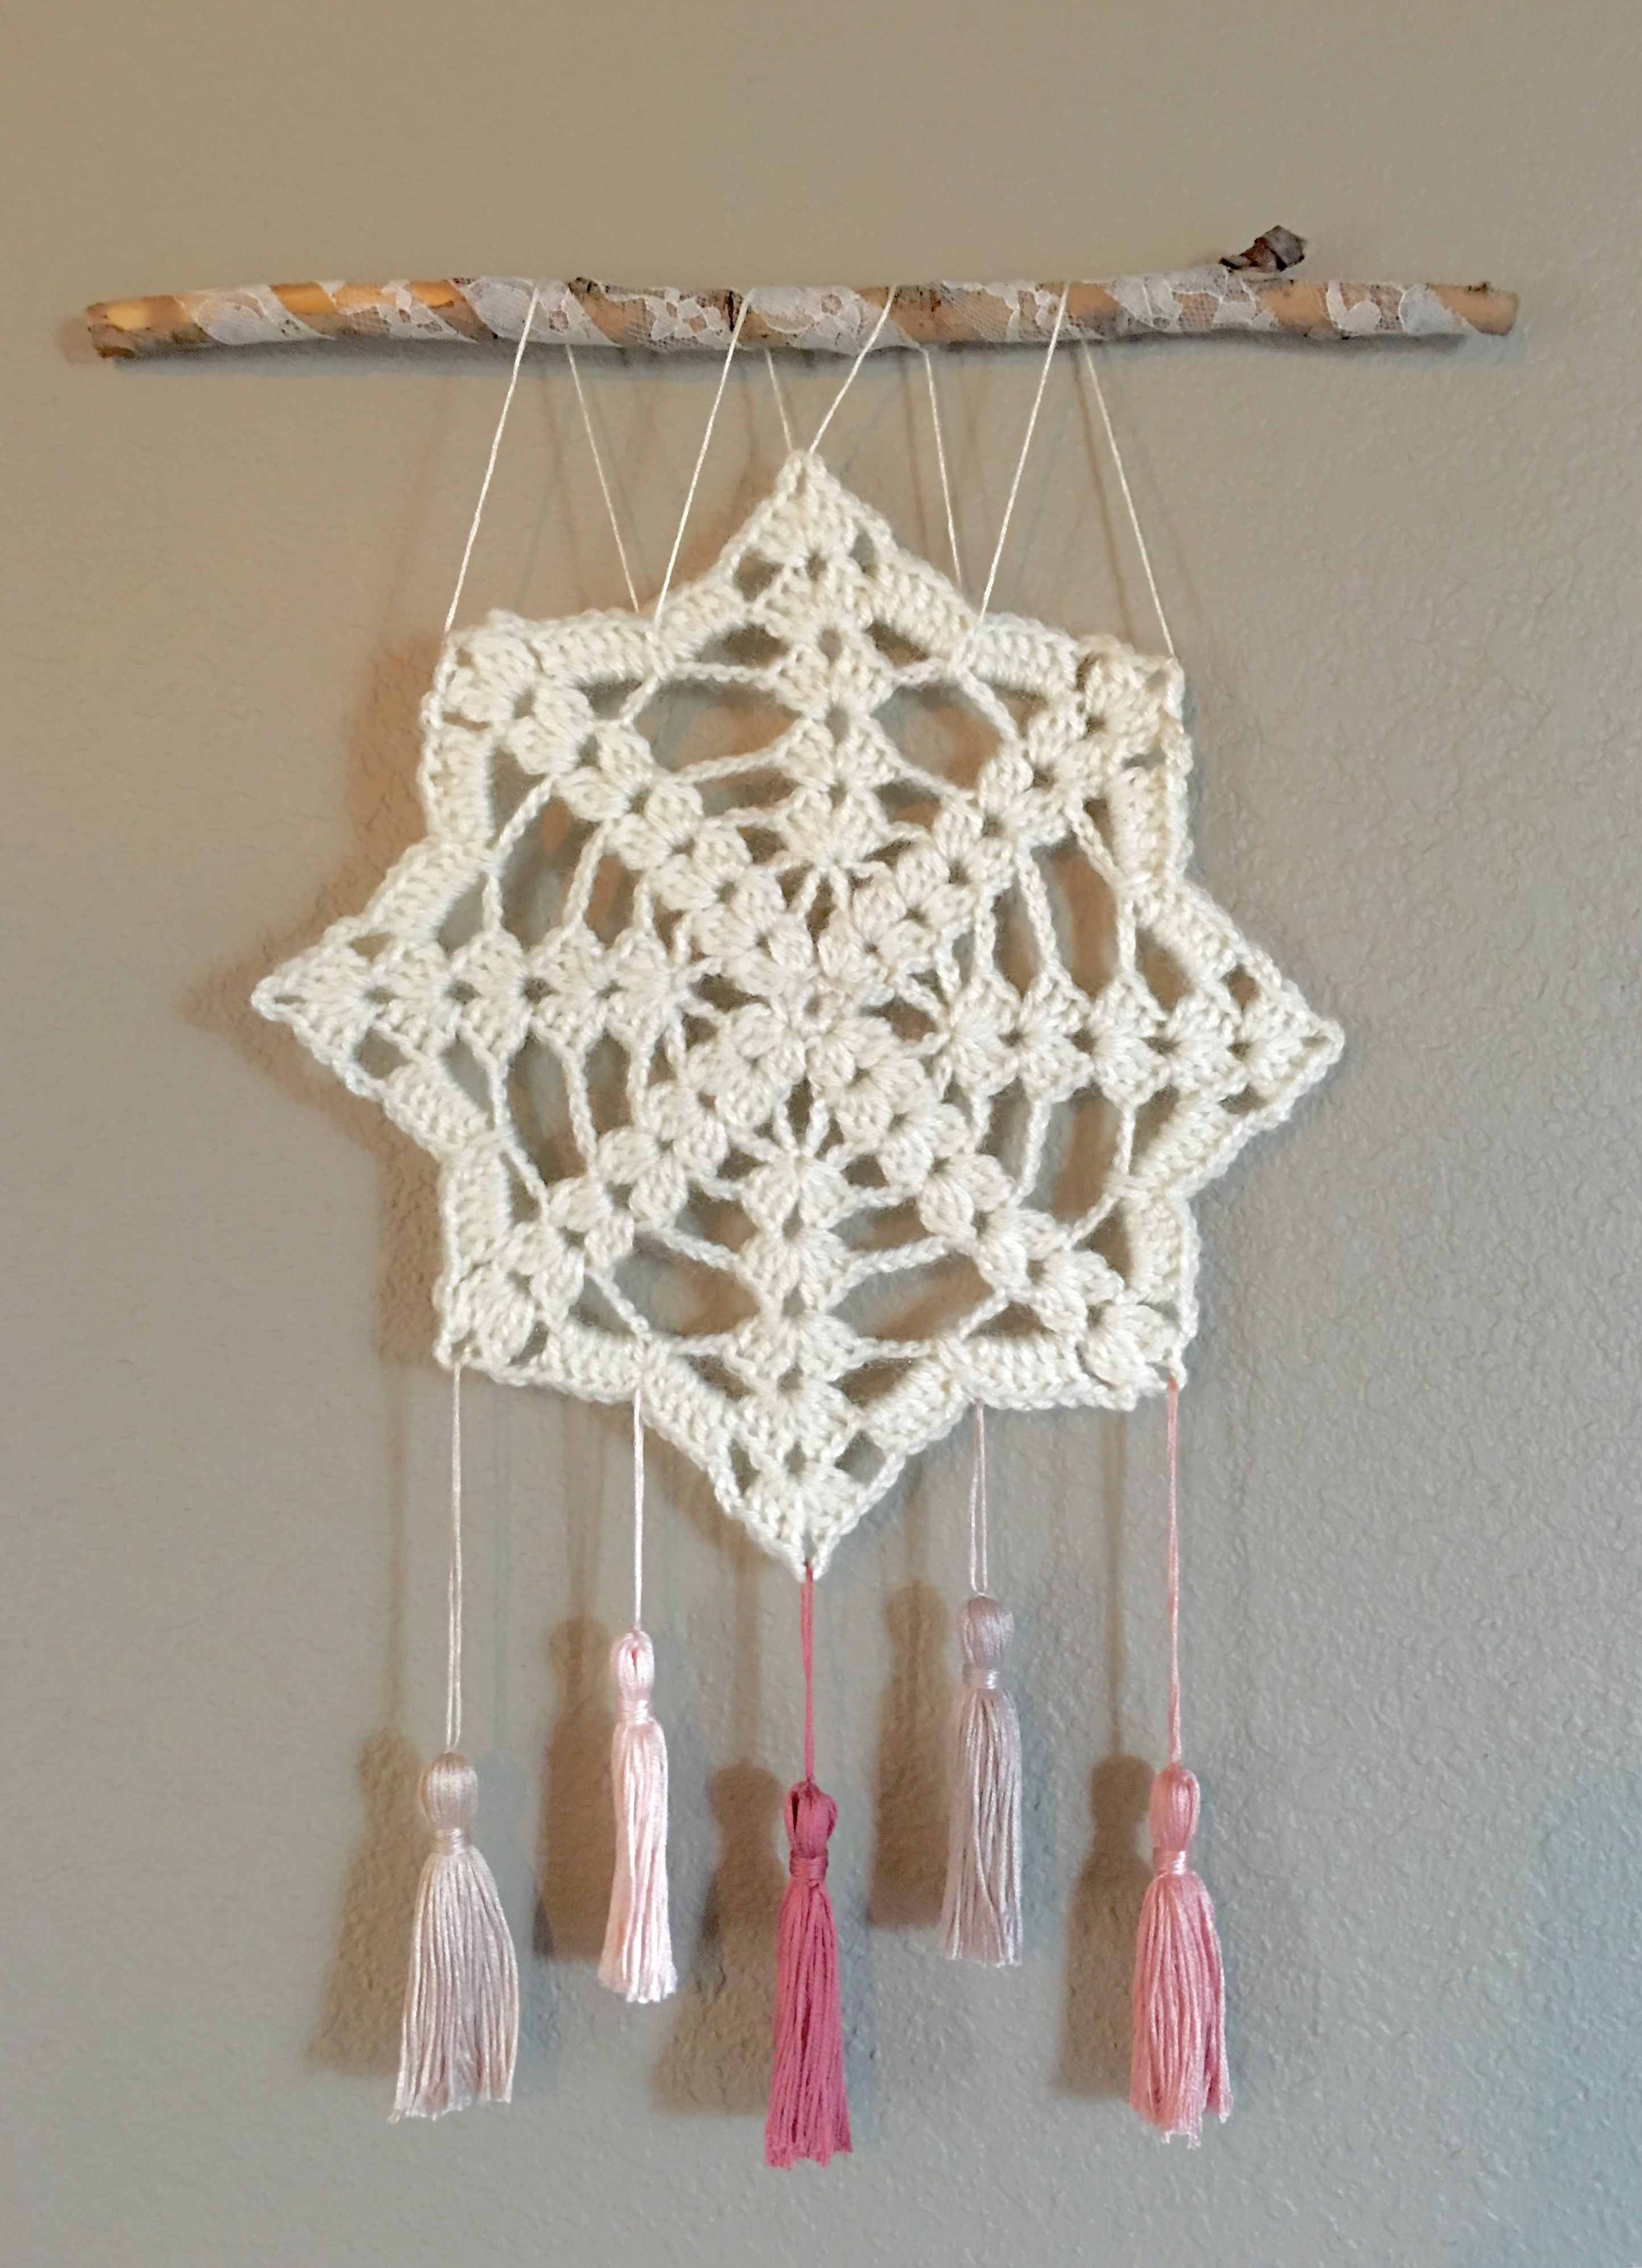 Crochet Wall Hanging, Wall Decor, Doily Art, Shabby Chic Wall Art Intended For Current Crochet Wall Art (Gallery 12 of 20)